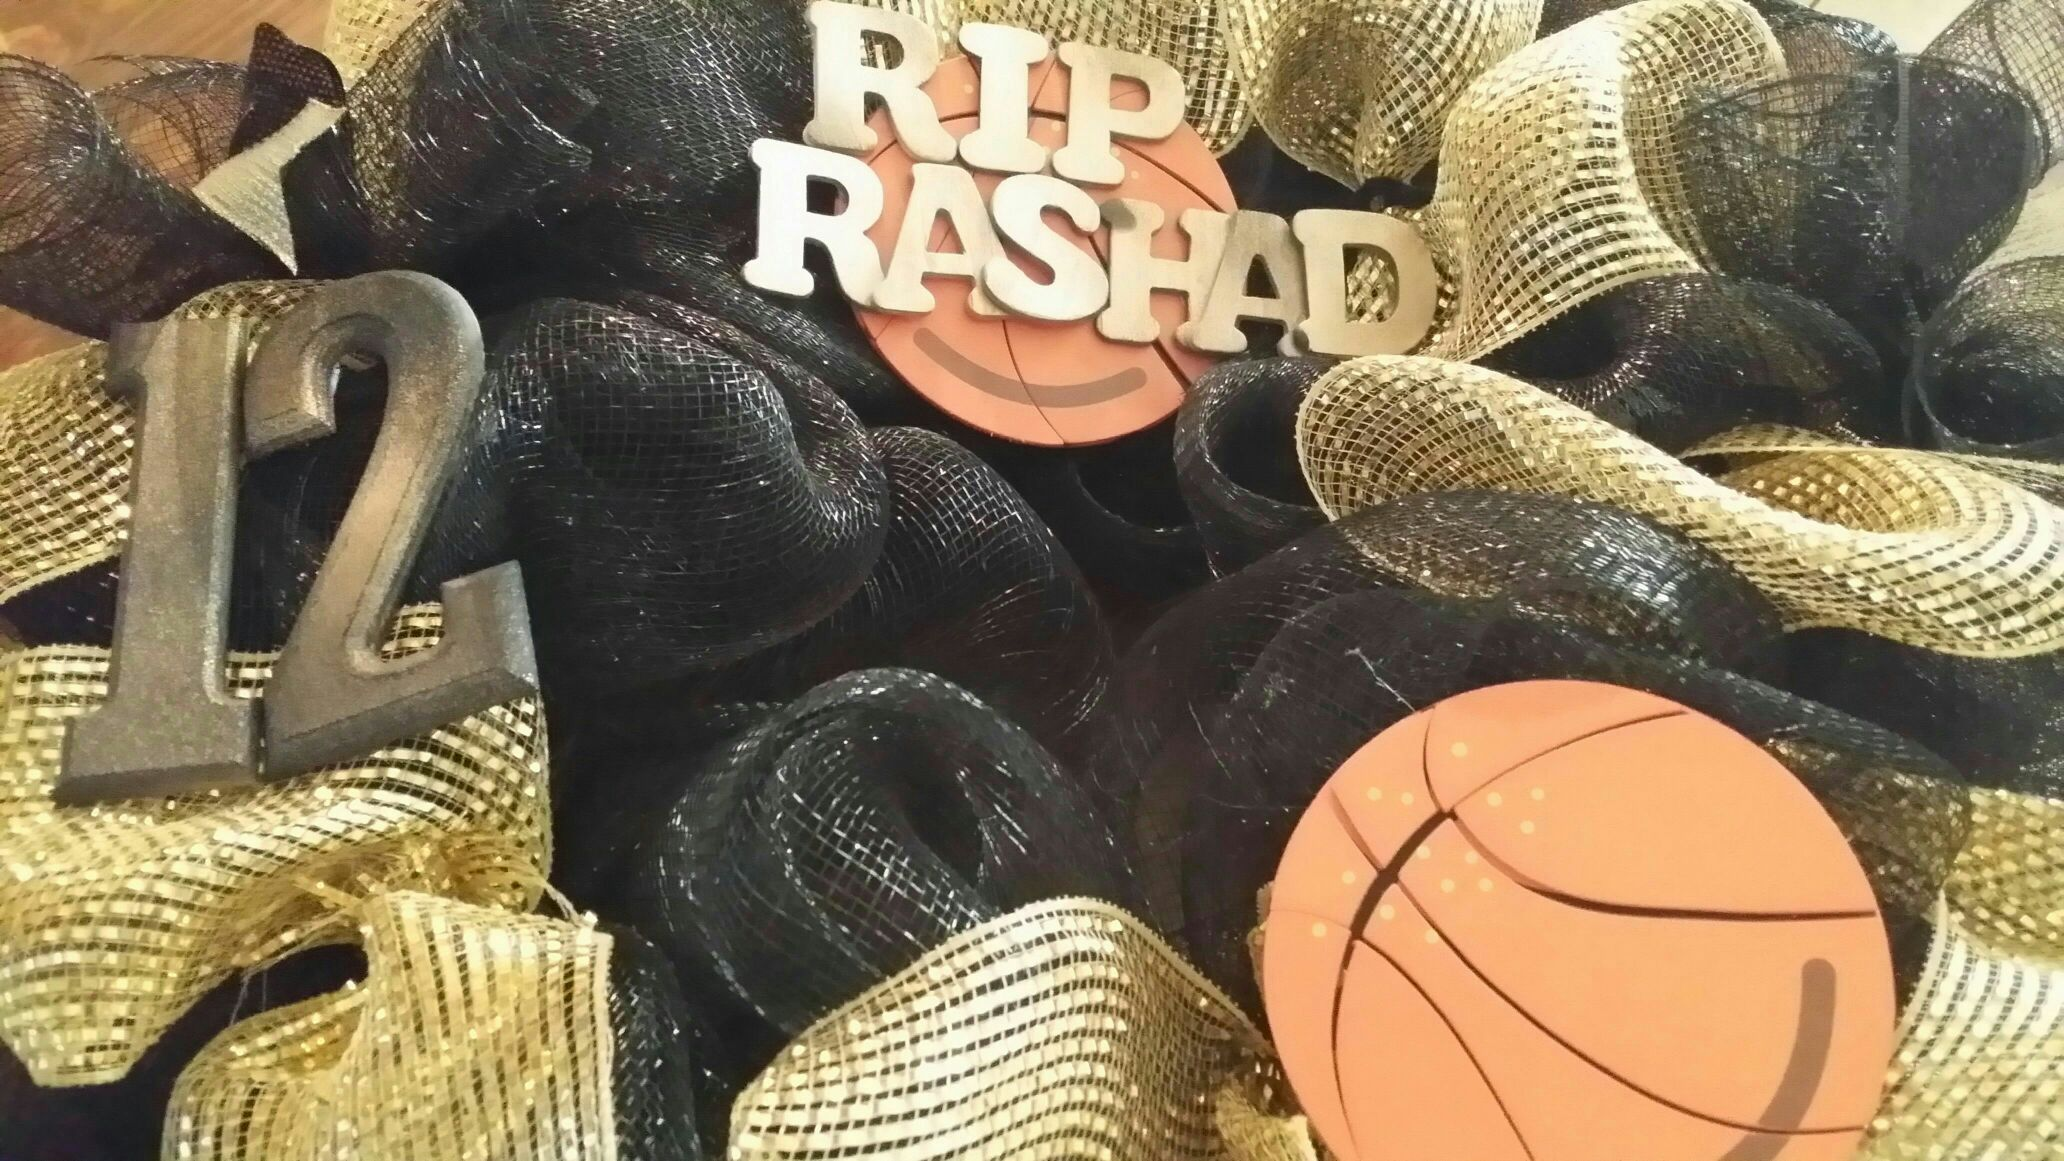 HAPPY  CAKE  DAY  RIP  RASHAD  - Magazine cover